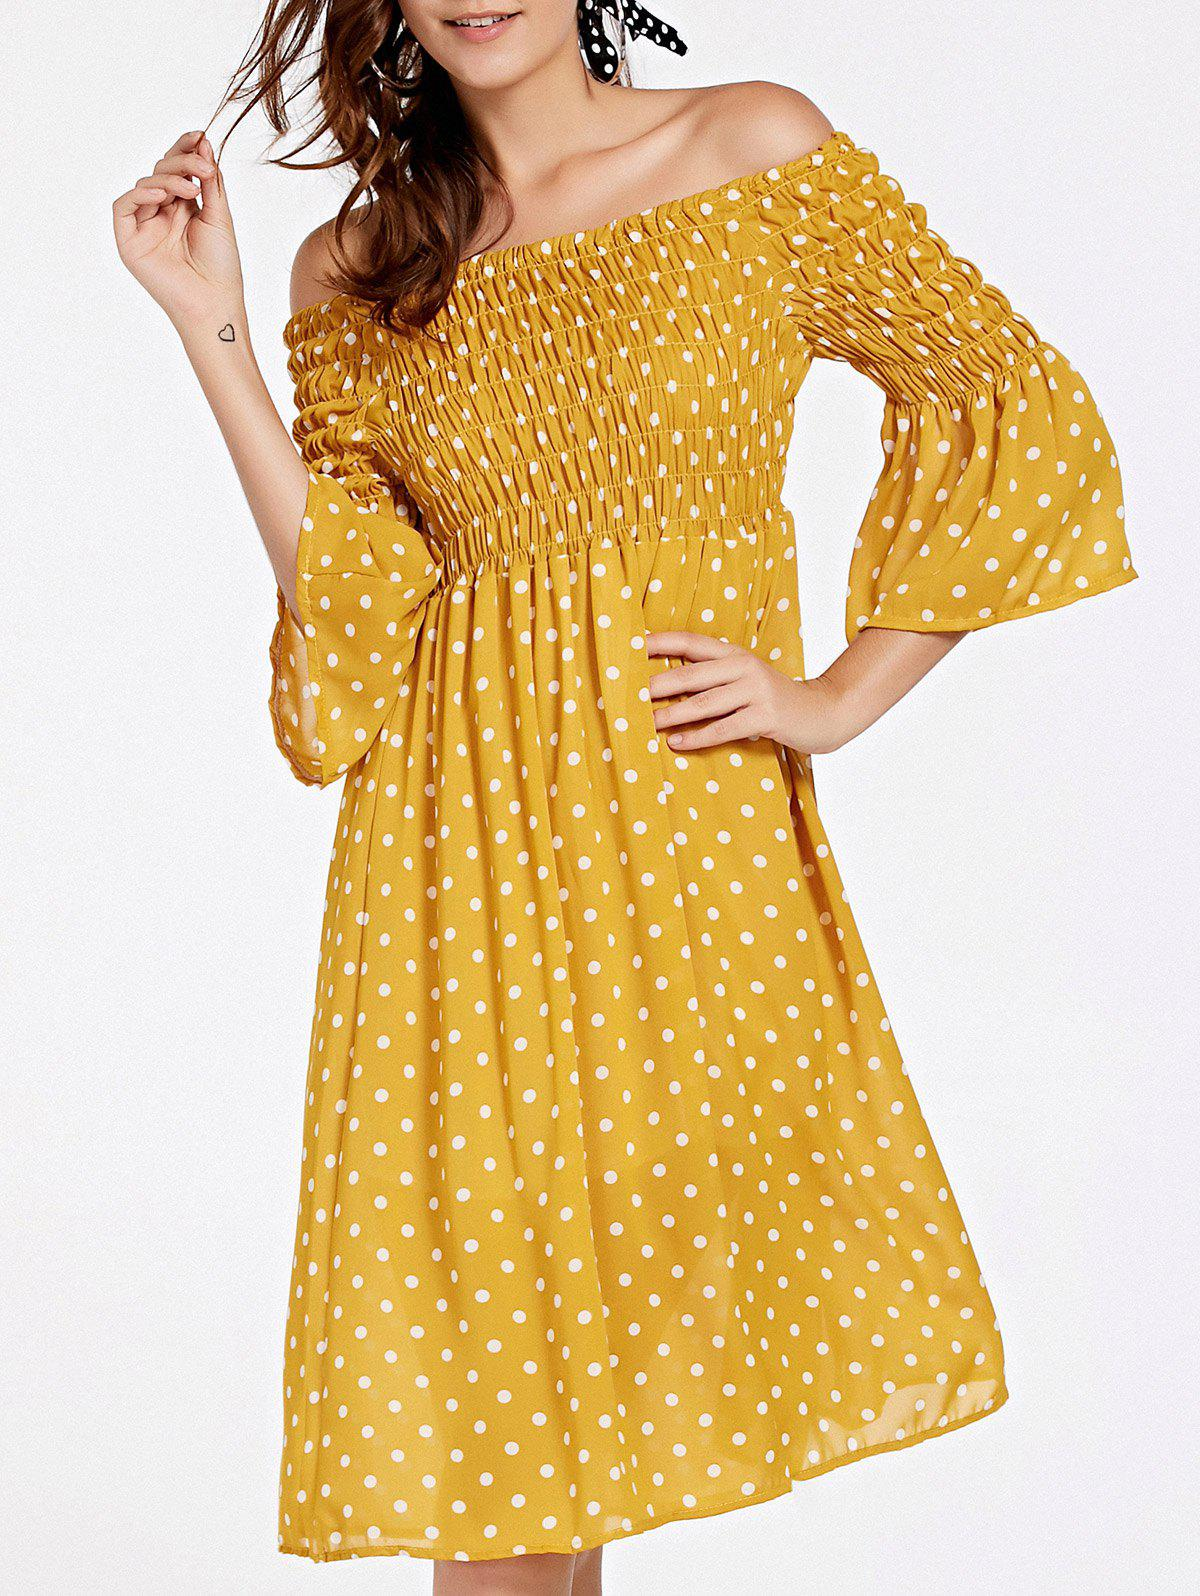 Stylish Polka Dot 3/4 Sleeve Off-The-Shoulder Women's Dress - YELLOW ONE SIZE(FIT SIZE XS TO M)